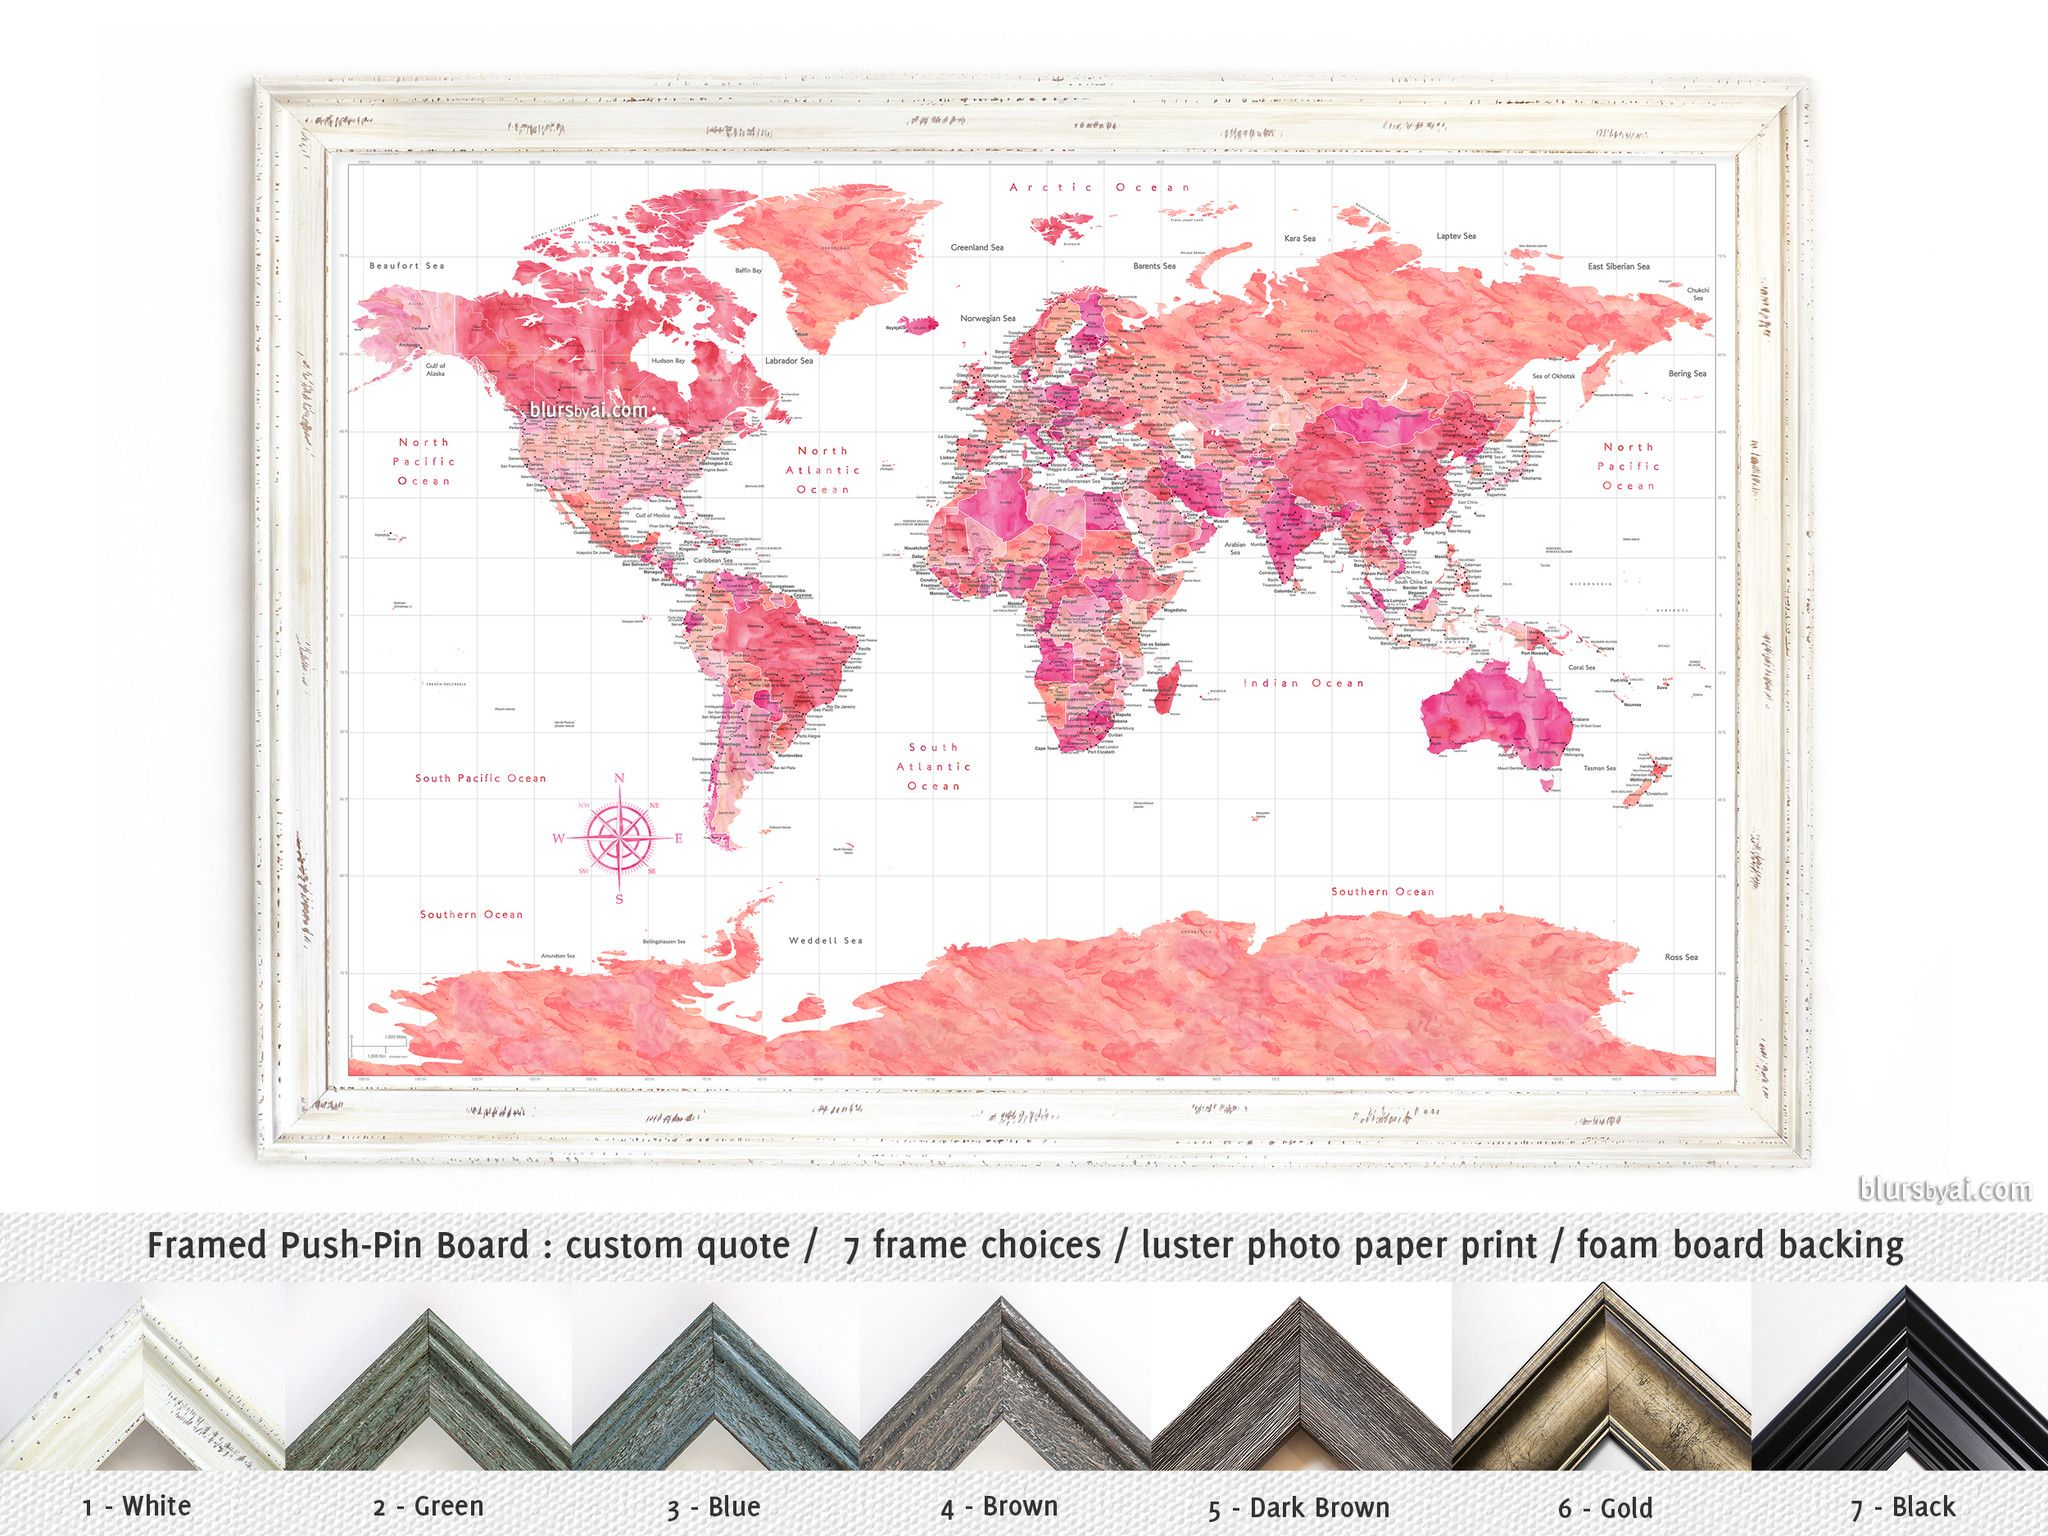 Elite framed push pin board hot pink watercolor world map with elite framed push pin board hot pink watercolor world map with cities antarctica gumiabroncs Gallery